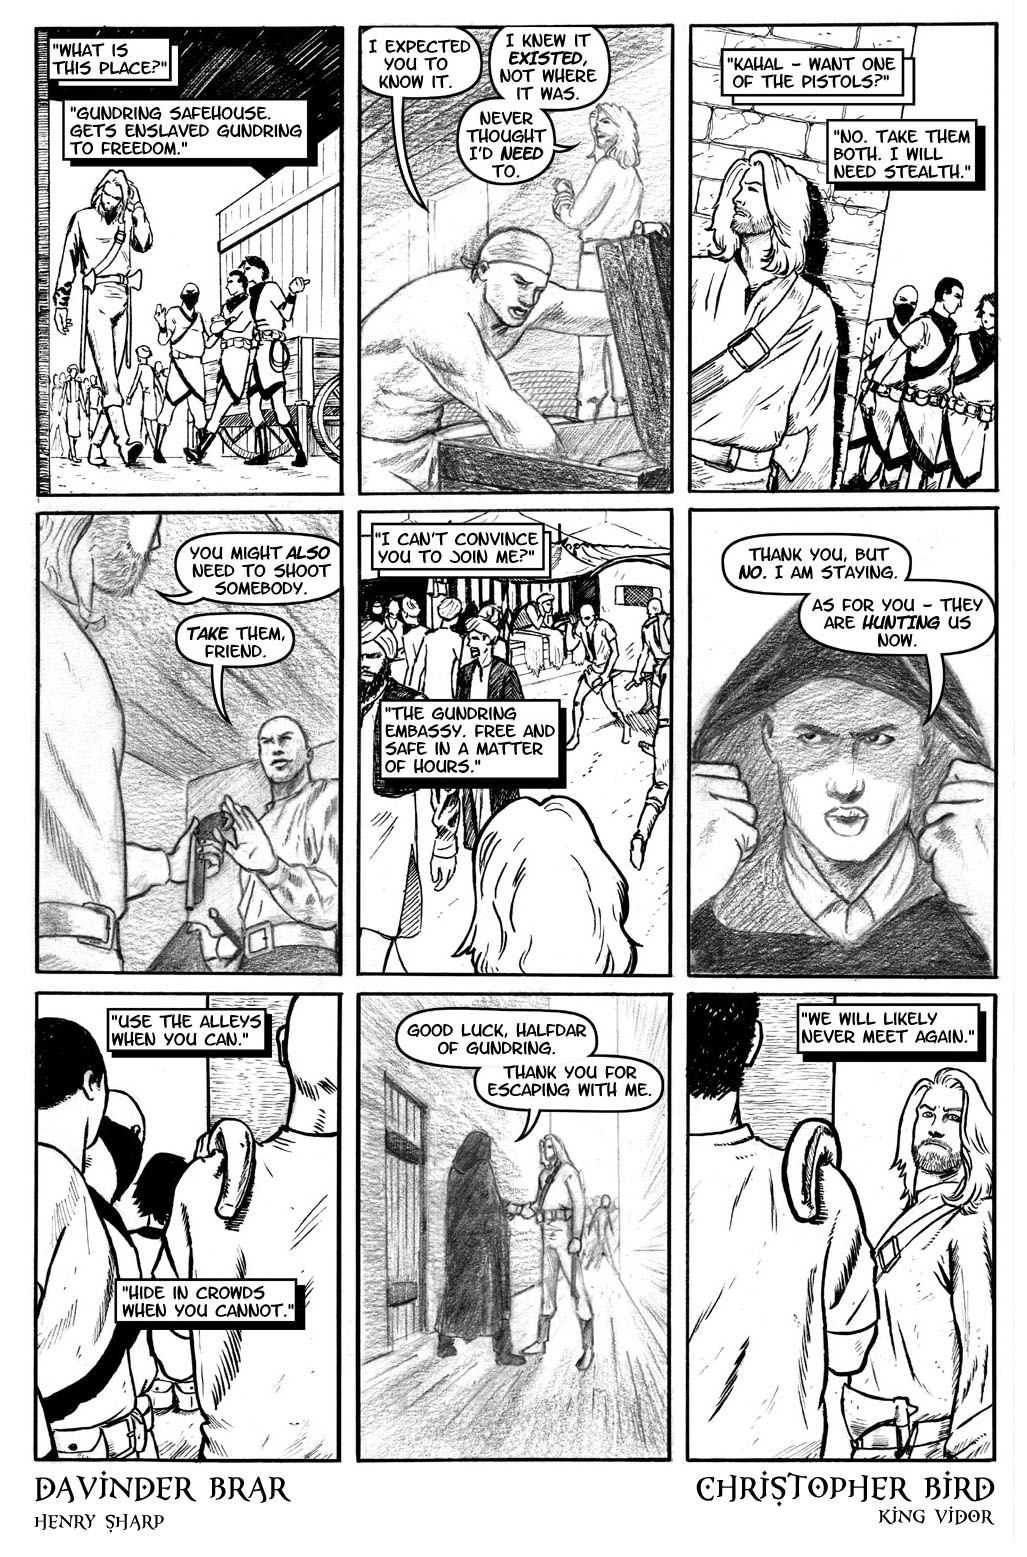 Book 3, page 7